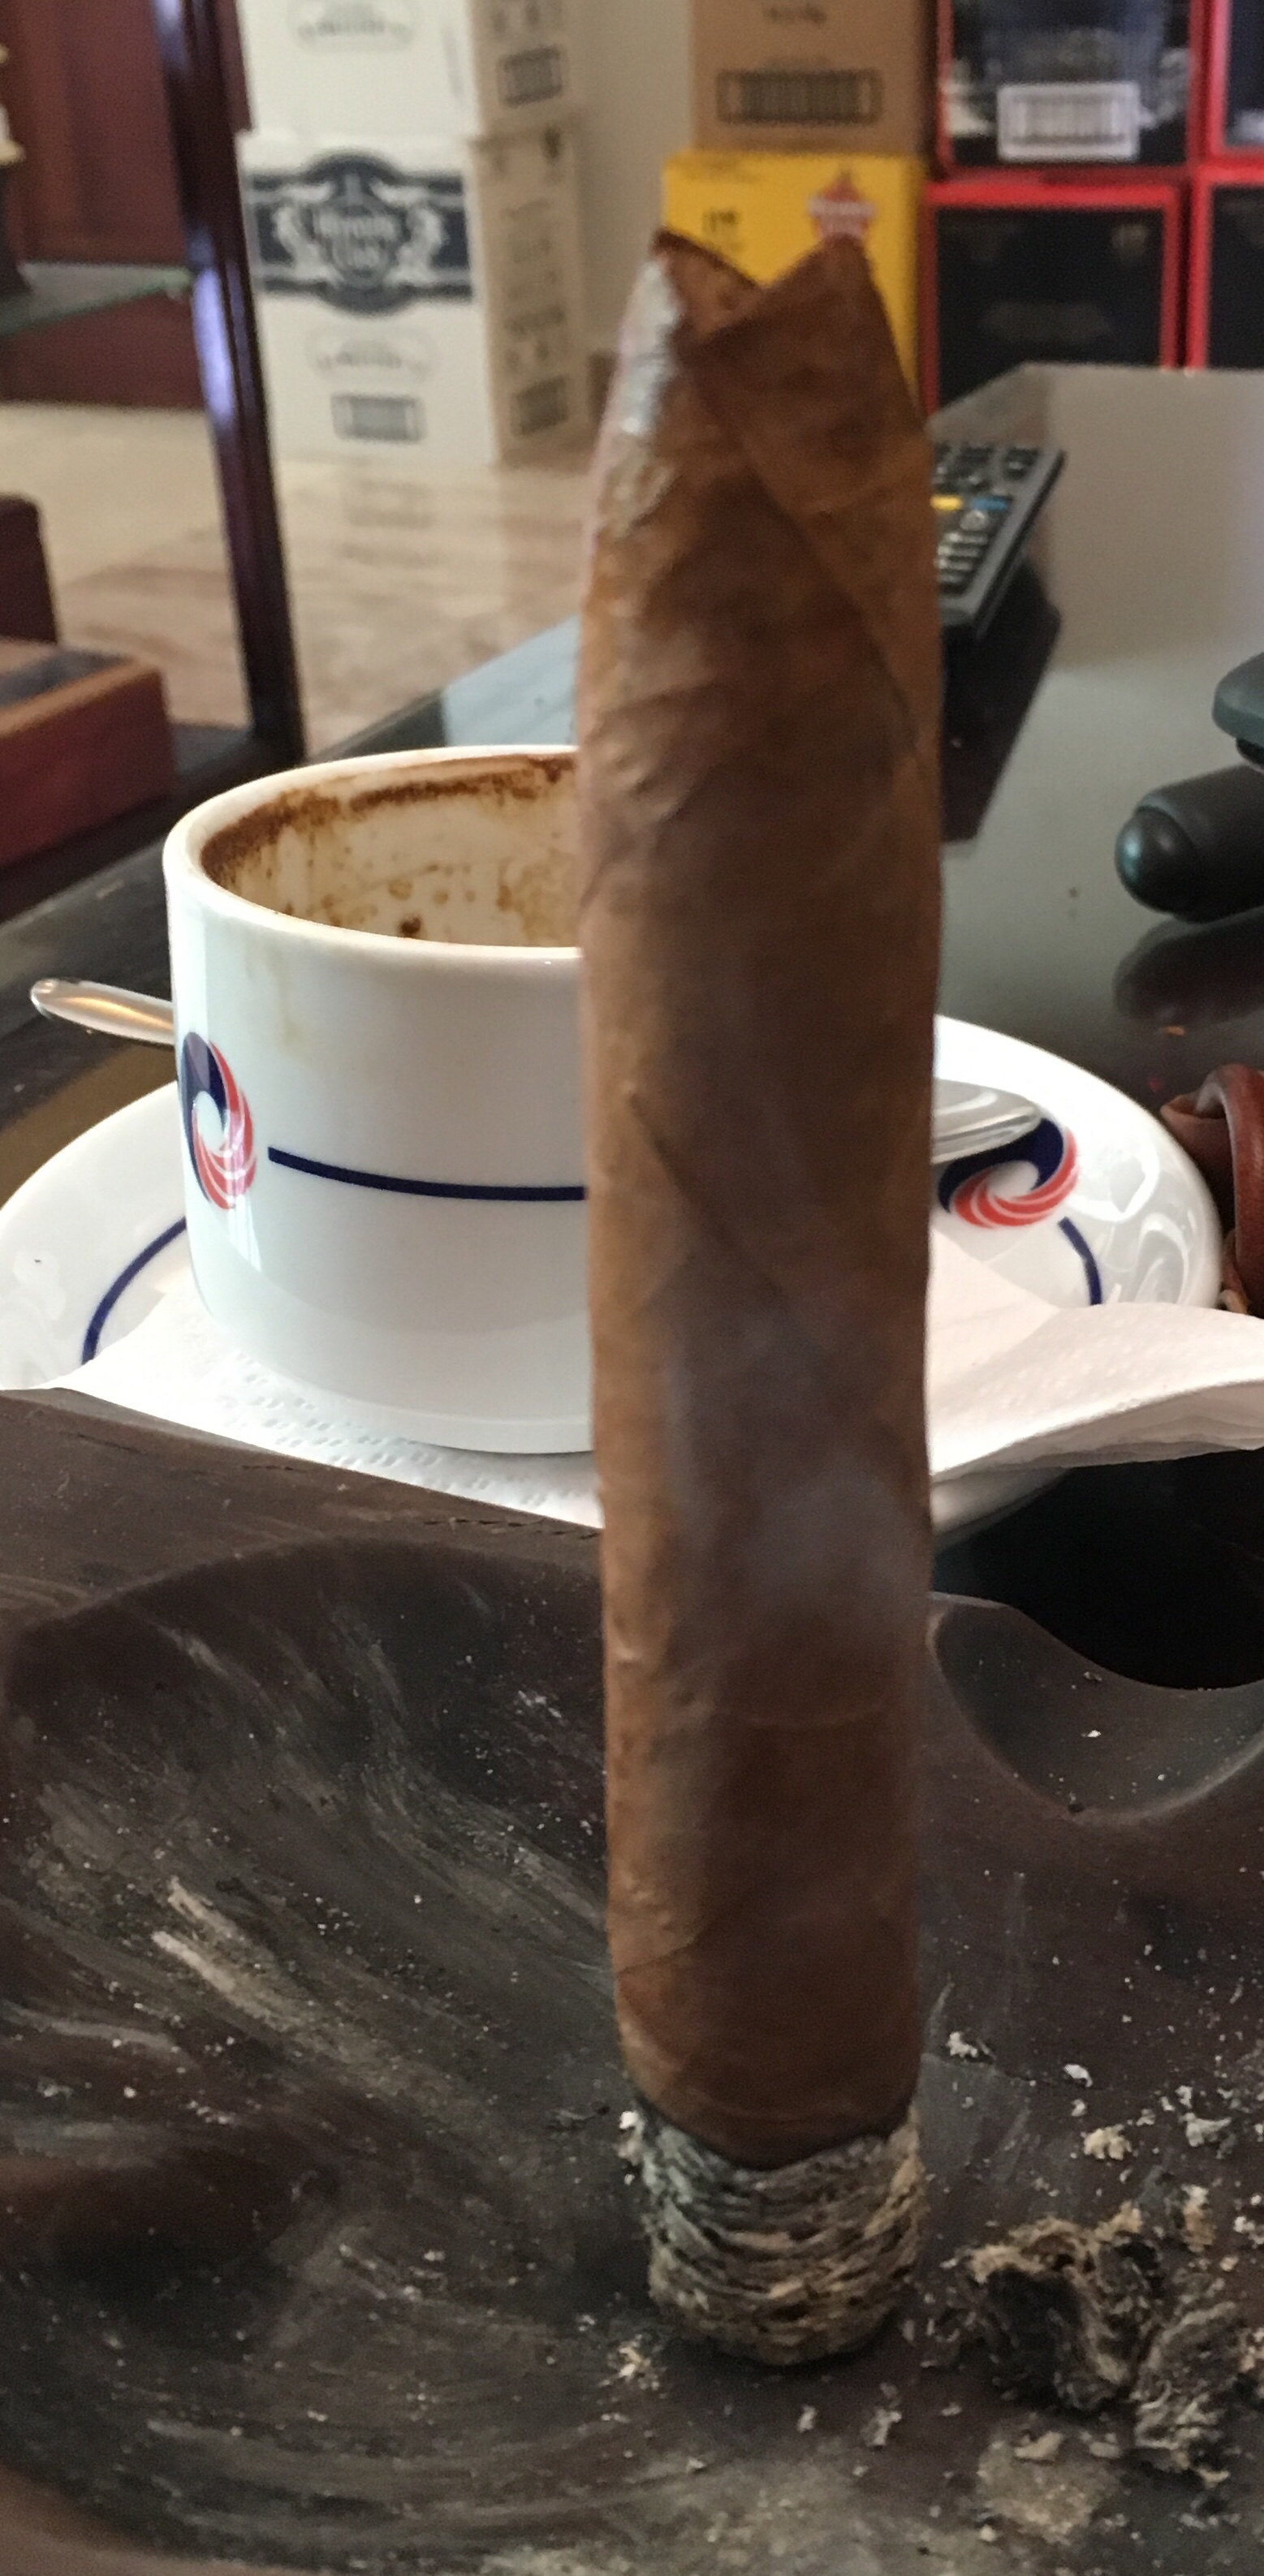 Standing a cigar on its ash? Only the best construction allows for it!